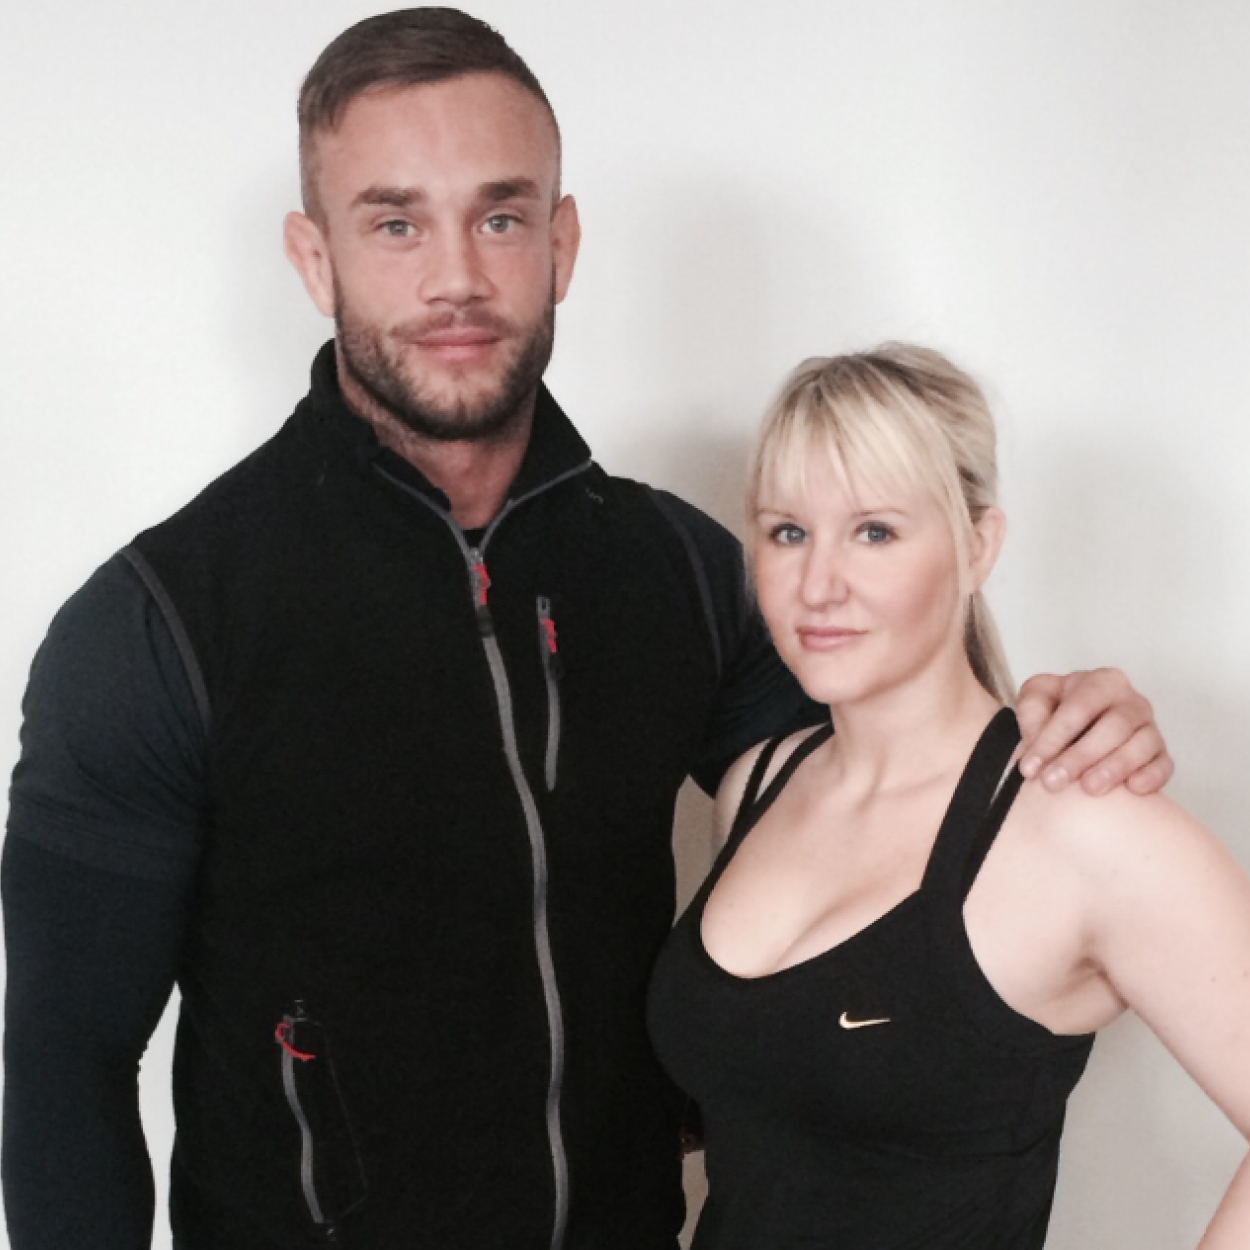 """GEMMA BARNFIELD   """"I have had the privilege of having Adam as my personal trainer for a number of years now. Looking to find a PT I found myself stood in front of the PT stand at fitness first, there were many available but what drew me to Adam was his academic qualifications to back up his experience and I am so glad I made that choice. Adam's ability to link theory with practice is second to none and knows how to push to you to your limits whilst still managing to make the pain enjoyable! On top of that he is a really nice guy, is always happy to provide advice and encouragement and is always available at the end of the phone. I can't believe the positive changes and improvements I have made and I owe it all to Adam."""""""